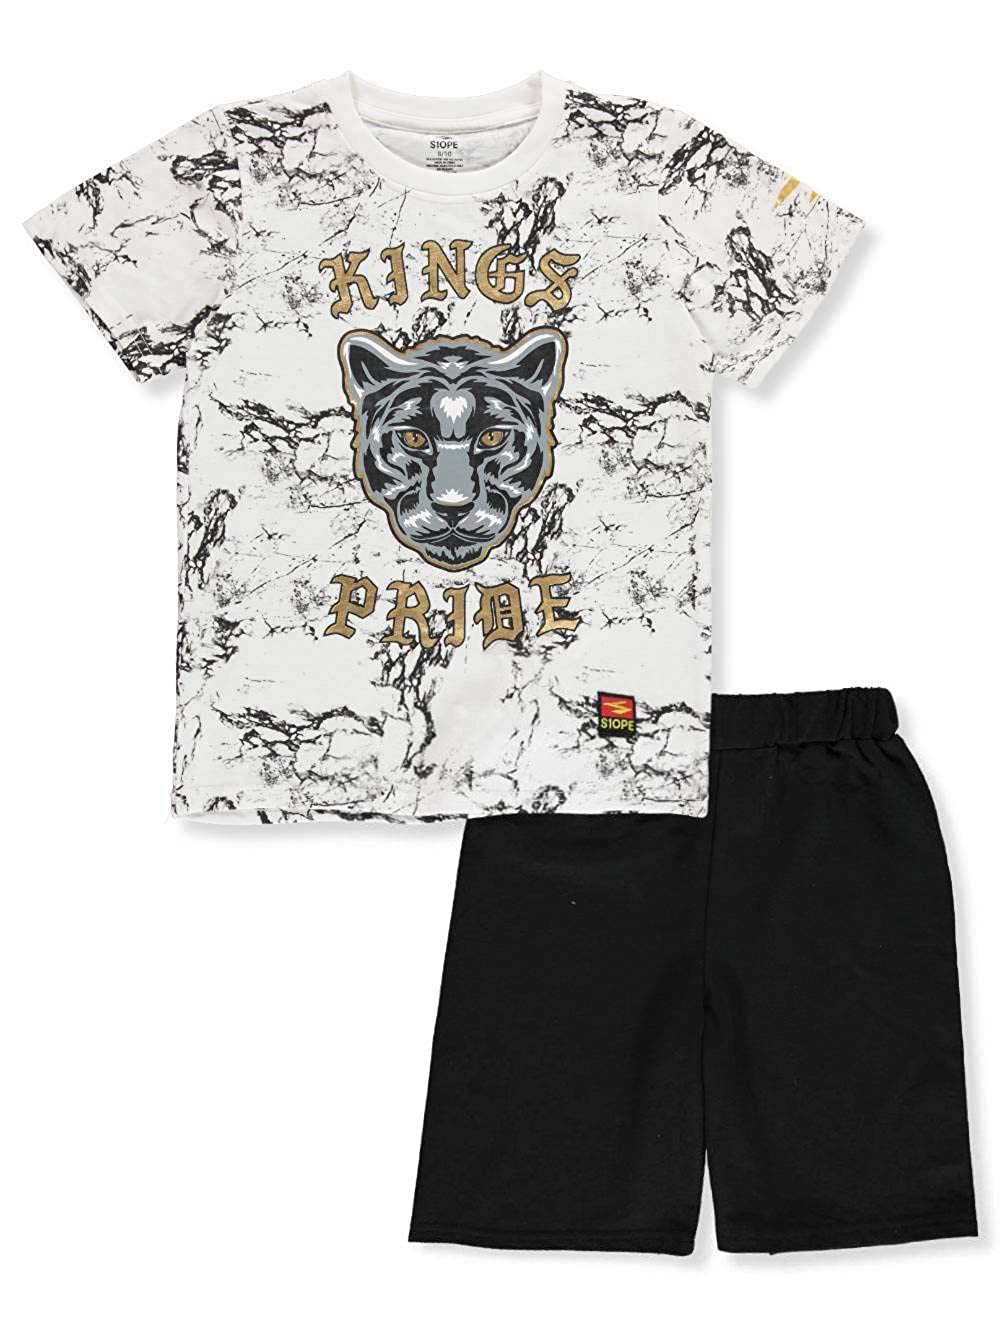 S1ope Boys 2-Piece Shorts Set Outfit